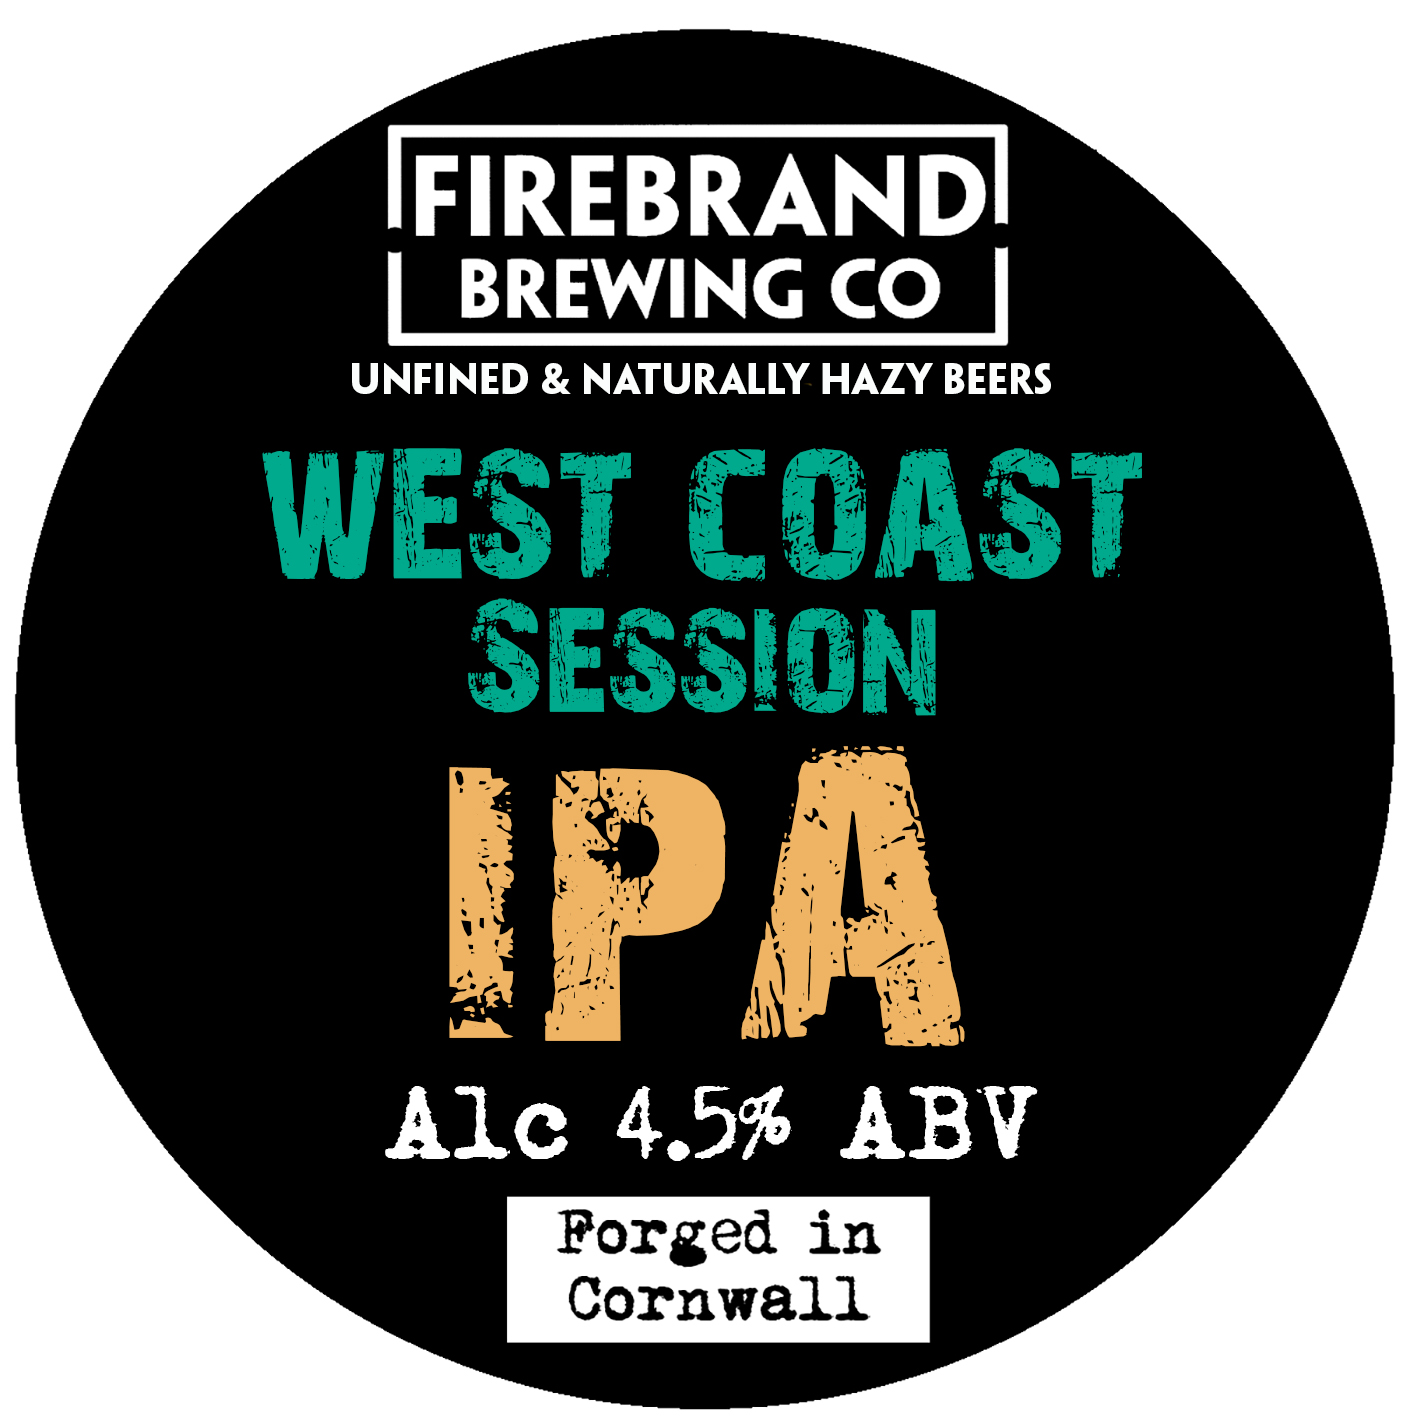 Firebrand West Coast IPA (Unfined) 9 Gallons Pale 4.5%